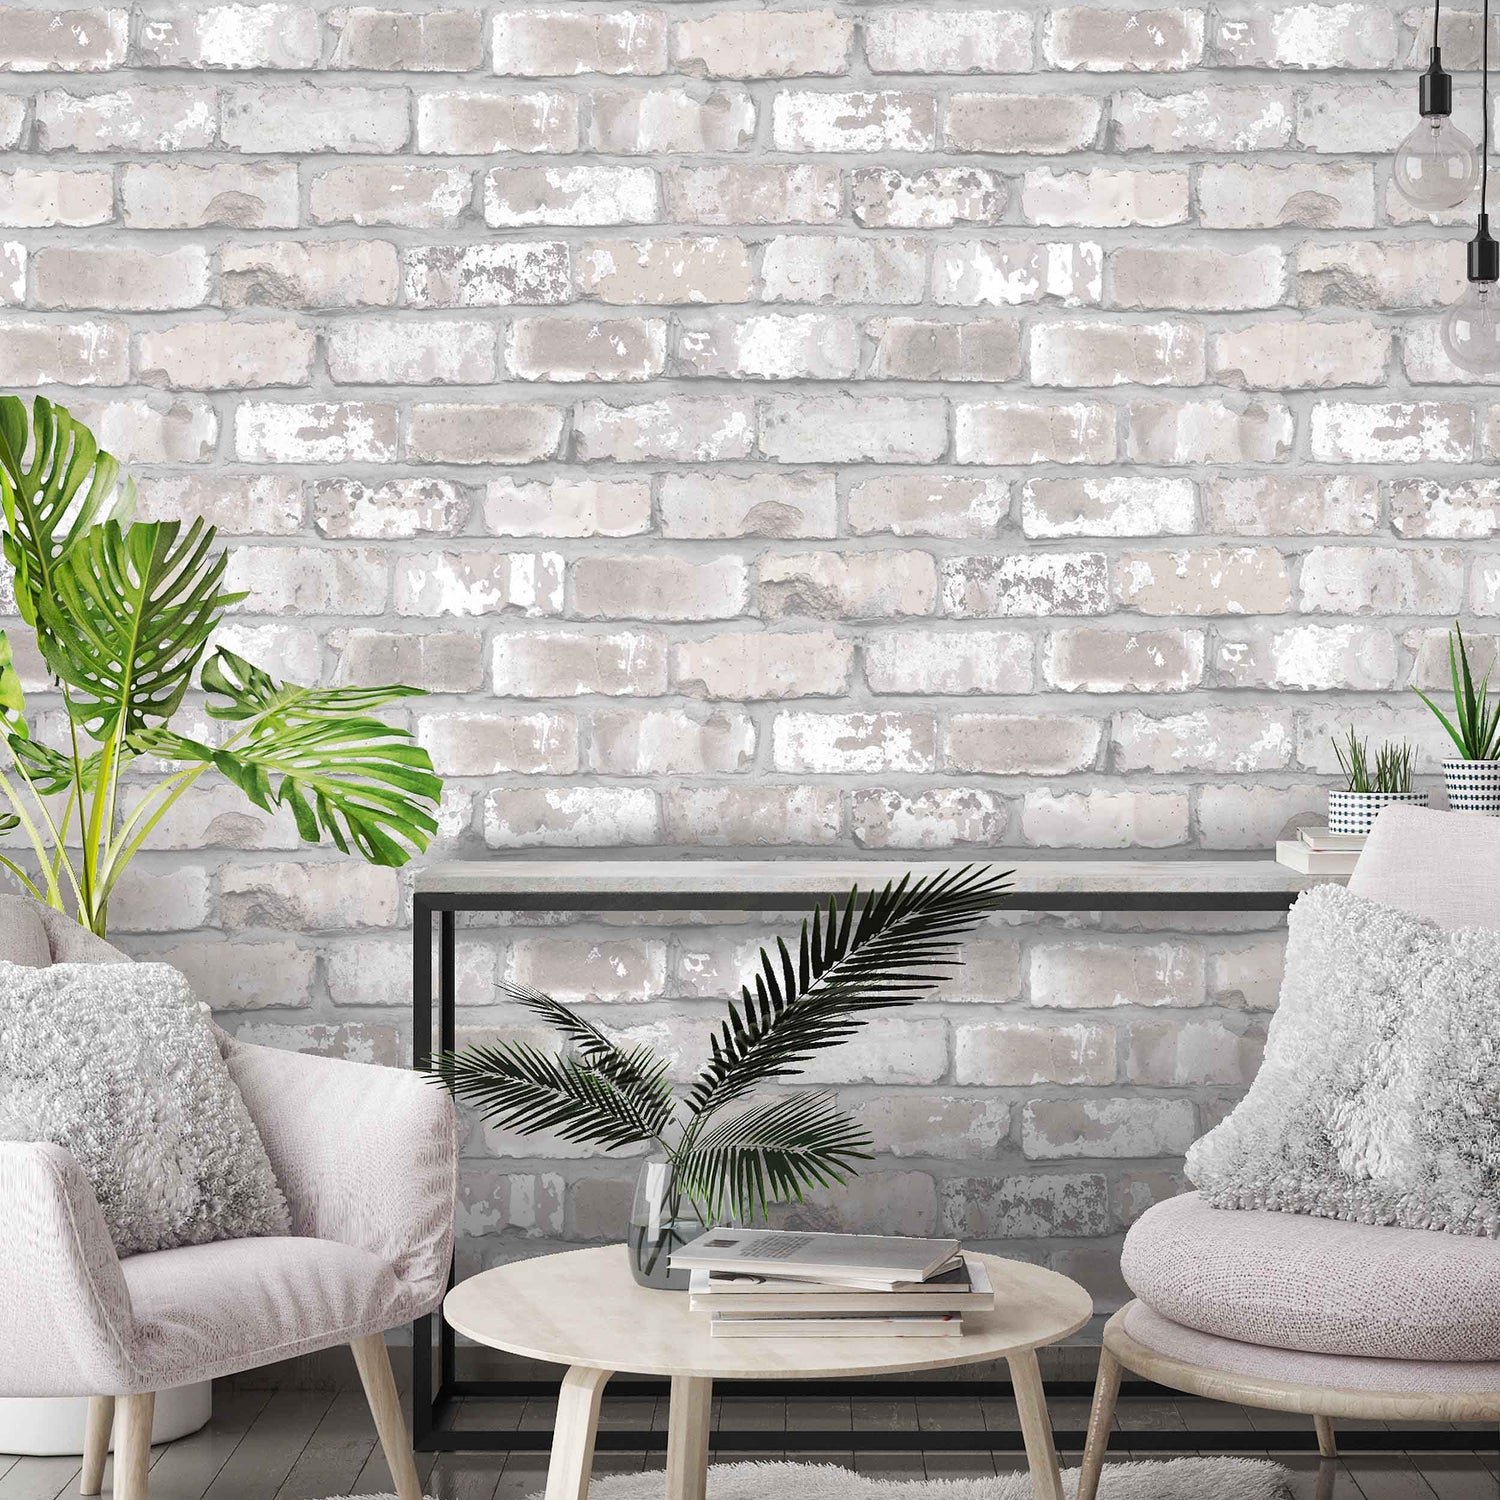 Exposed Brick Wallpaper By Woodchip & Magnolia